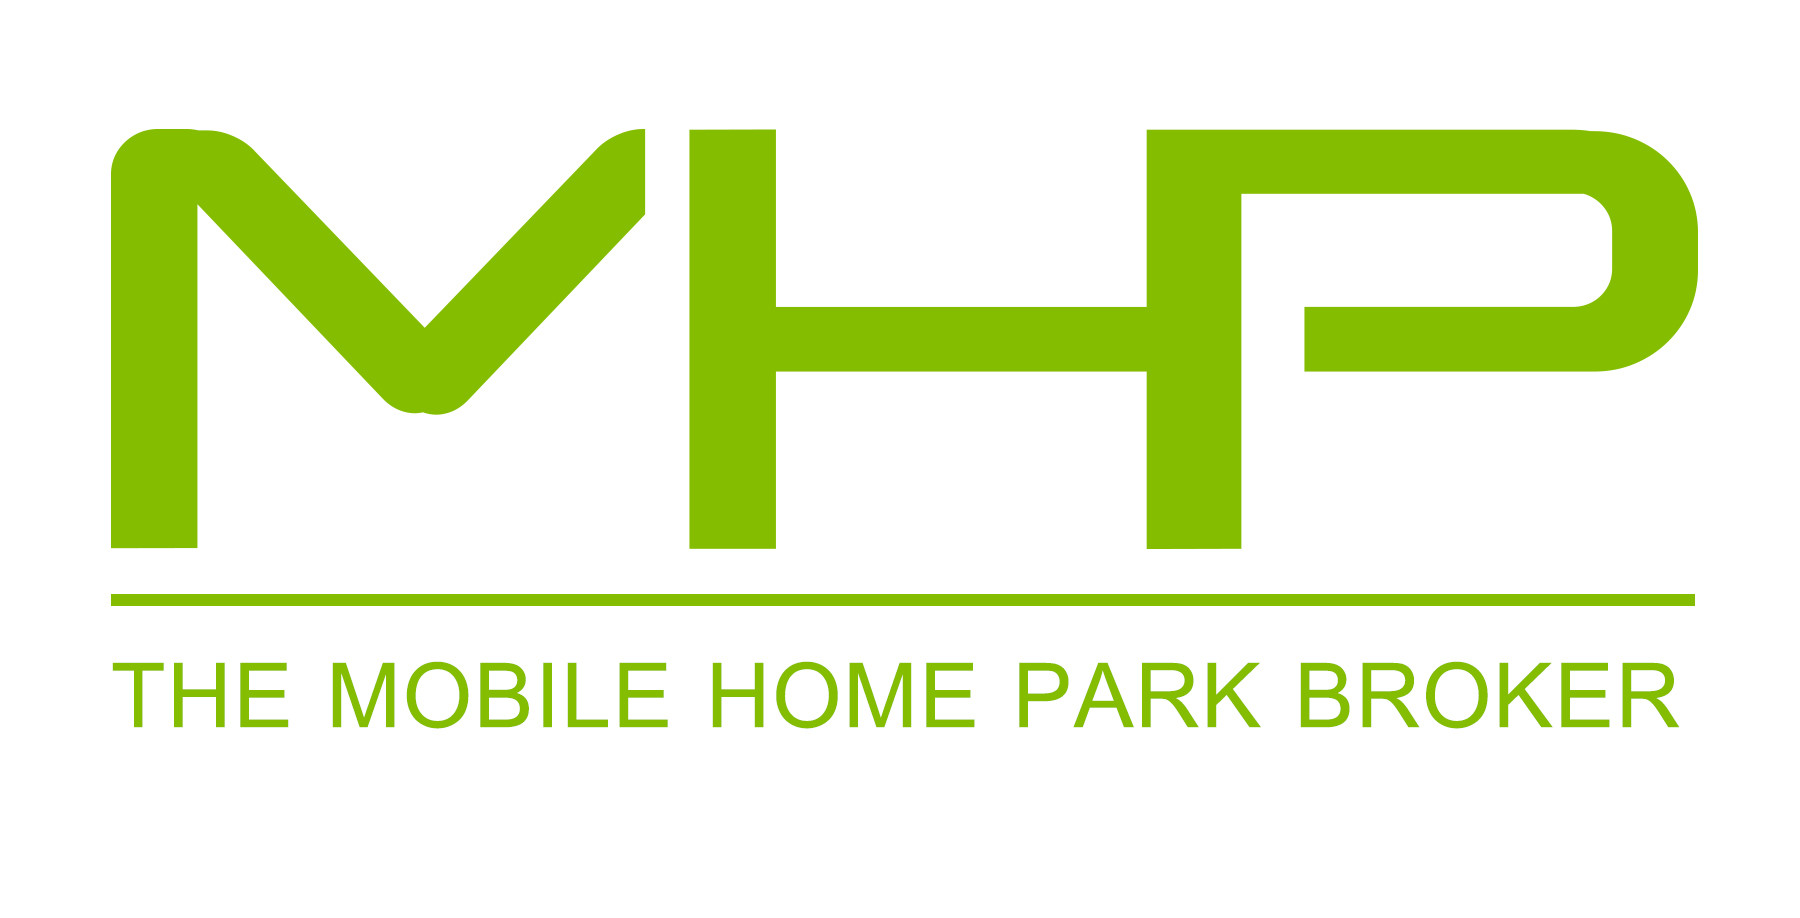 The Mobile Home Park Broker